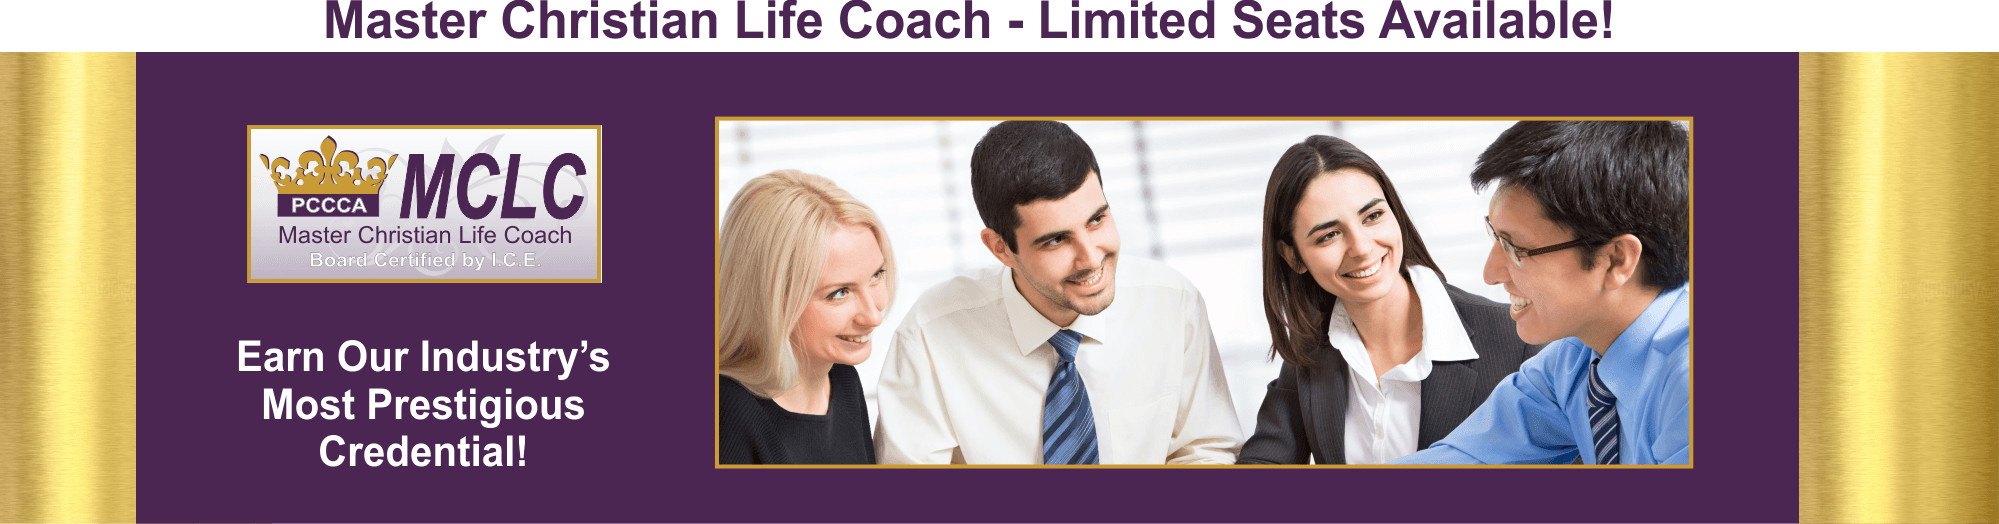 Master Christian Life Coach Mclc Training And Certification